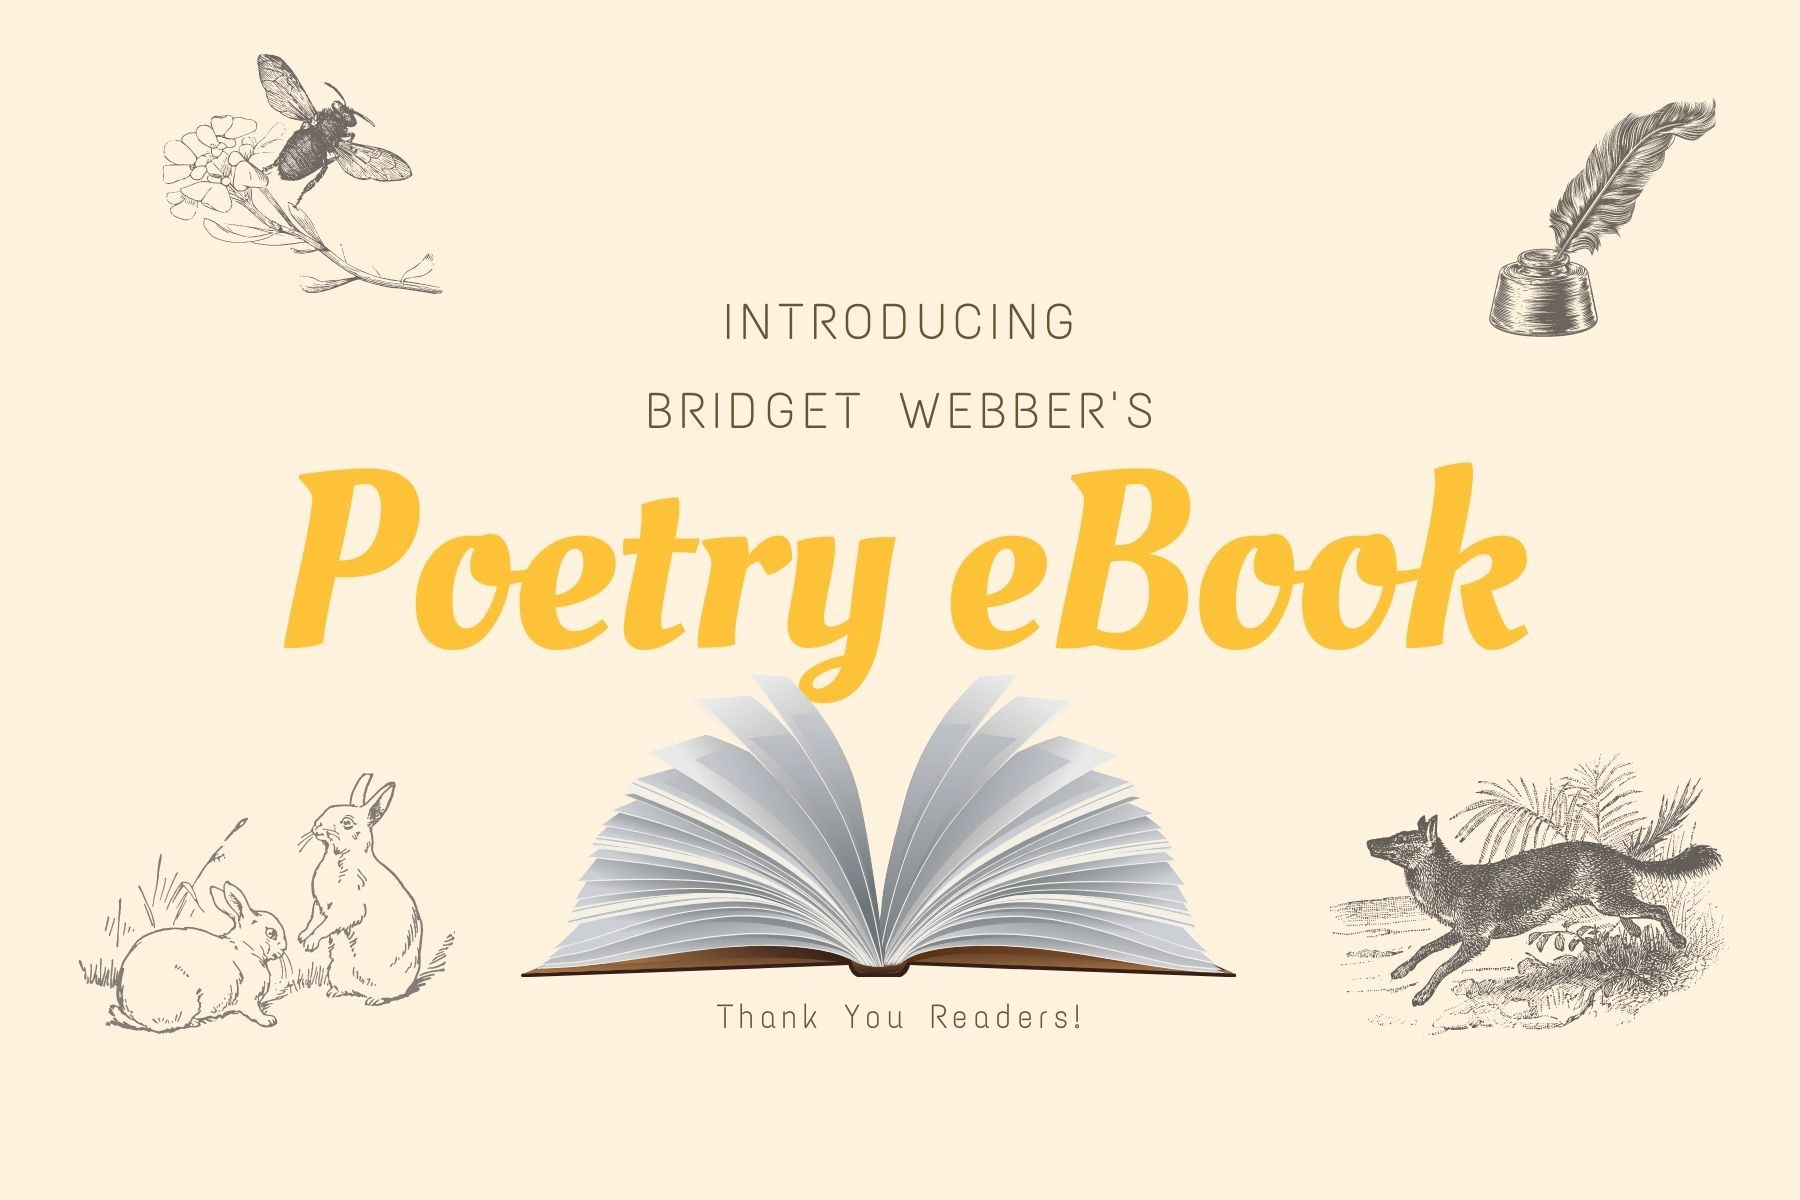 Poetry eBook poster of rabbits, a bumble bee, a fox, and Bridget Webber's writing quill, announcing her nature poem book.